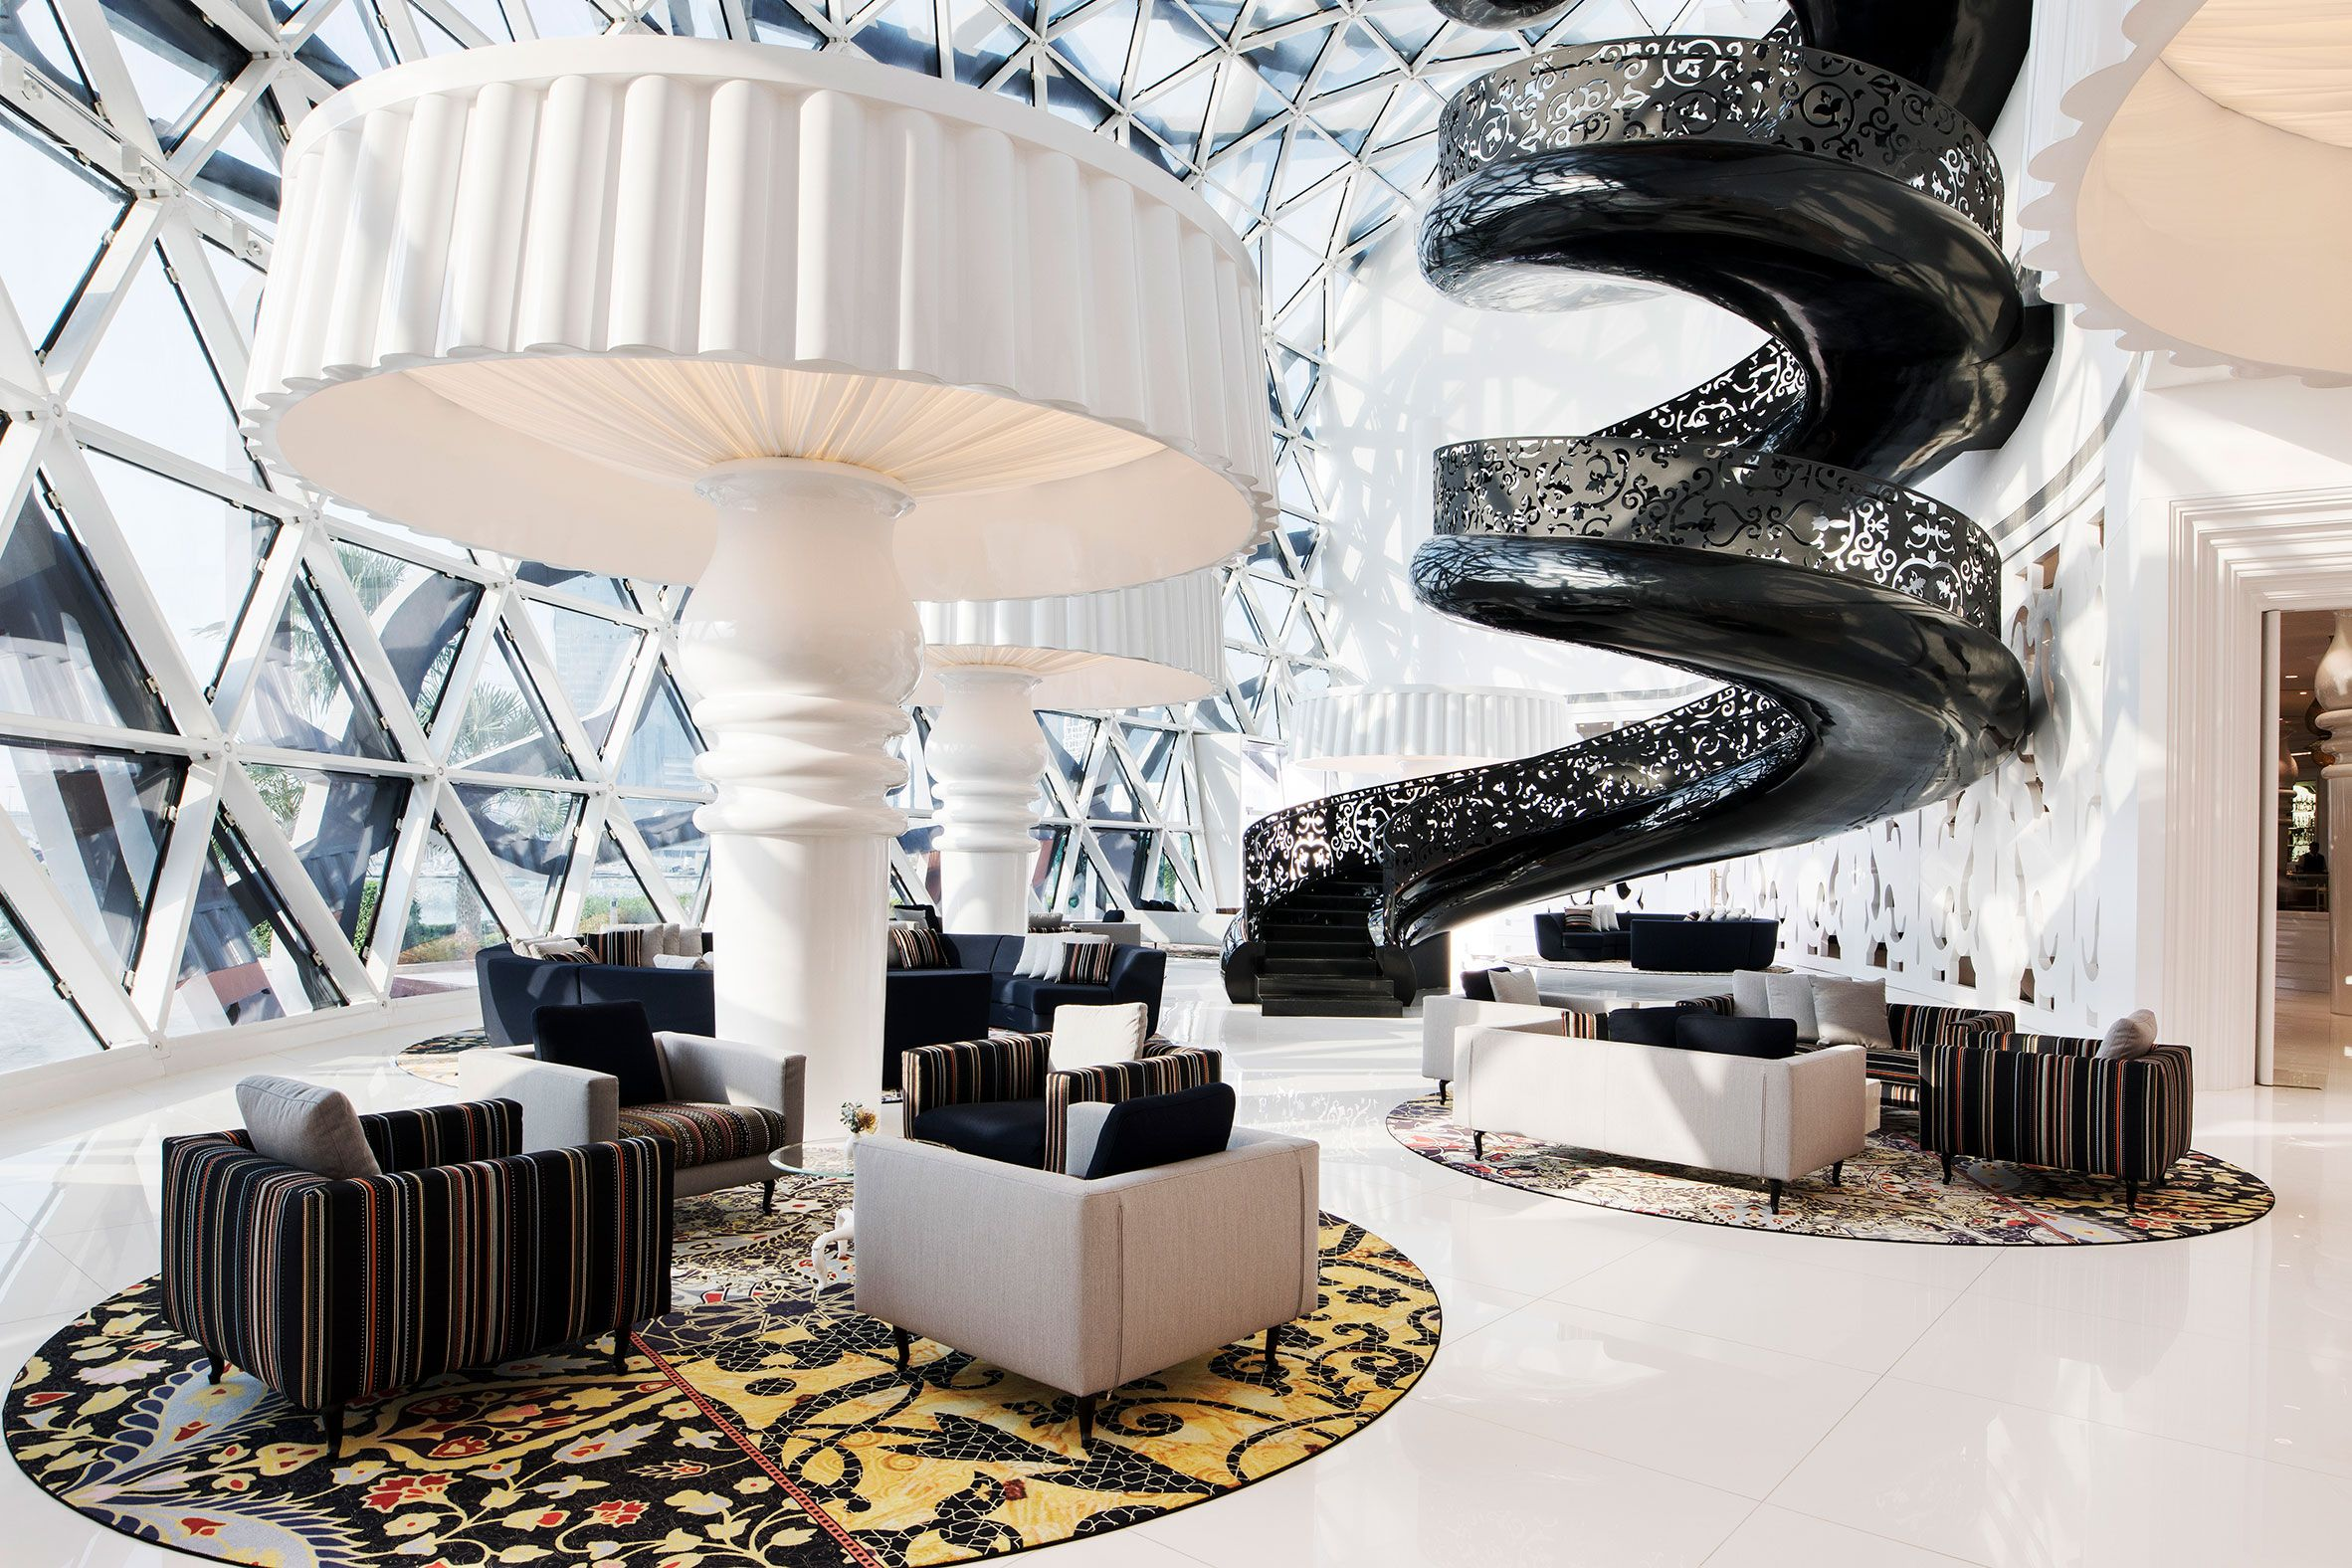 Mondrian Doha Hotel By South West Architecture With Interiors By